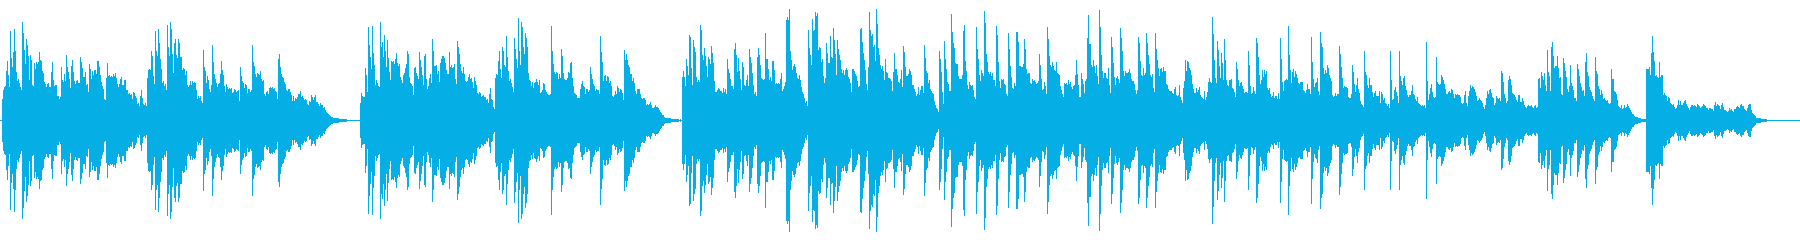 Relaxation music by the piano's reproduced waveform